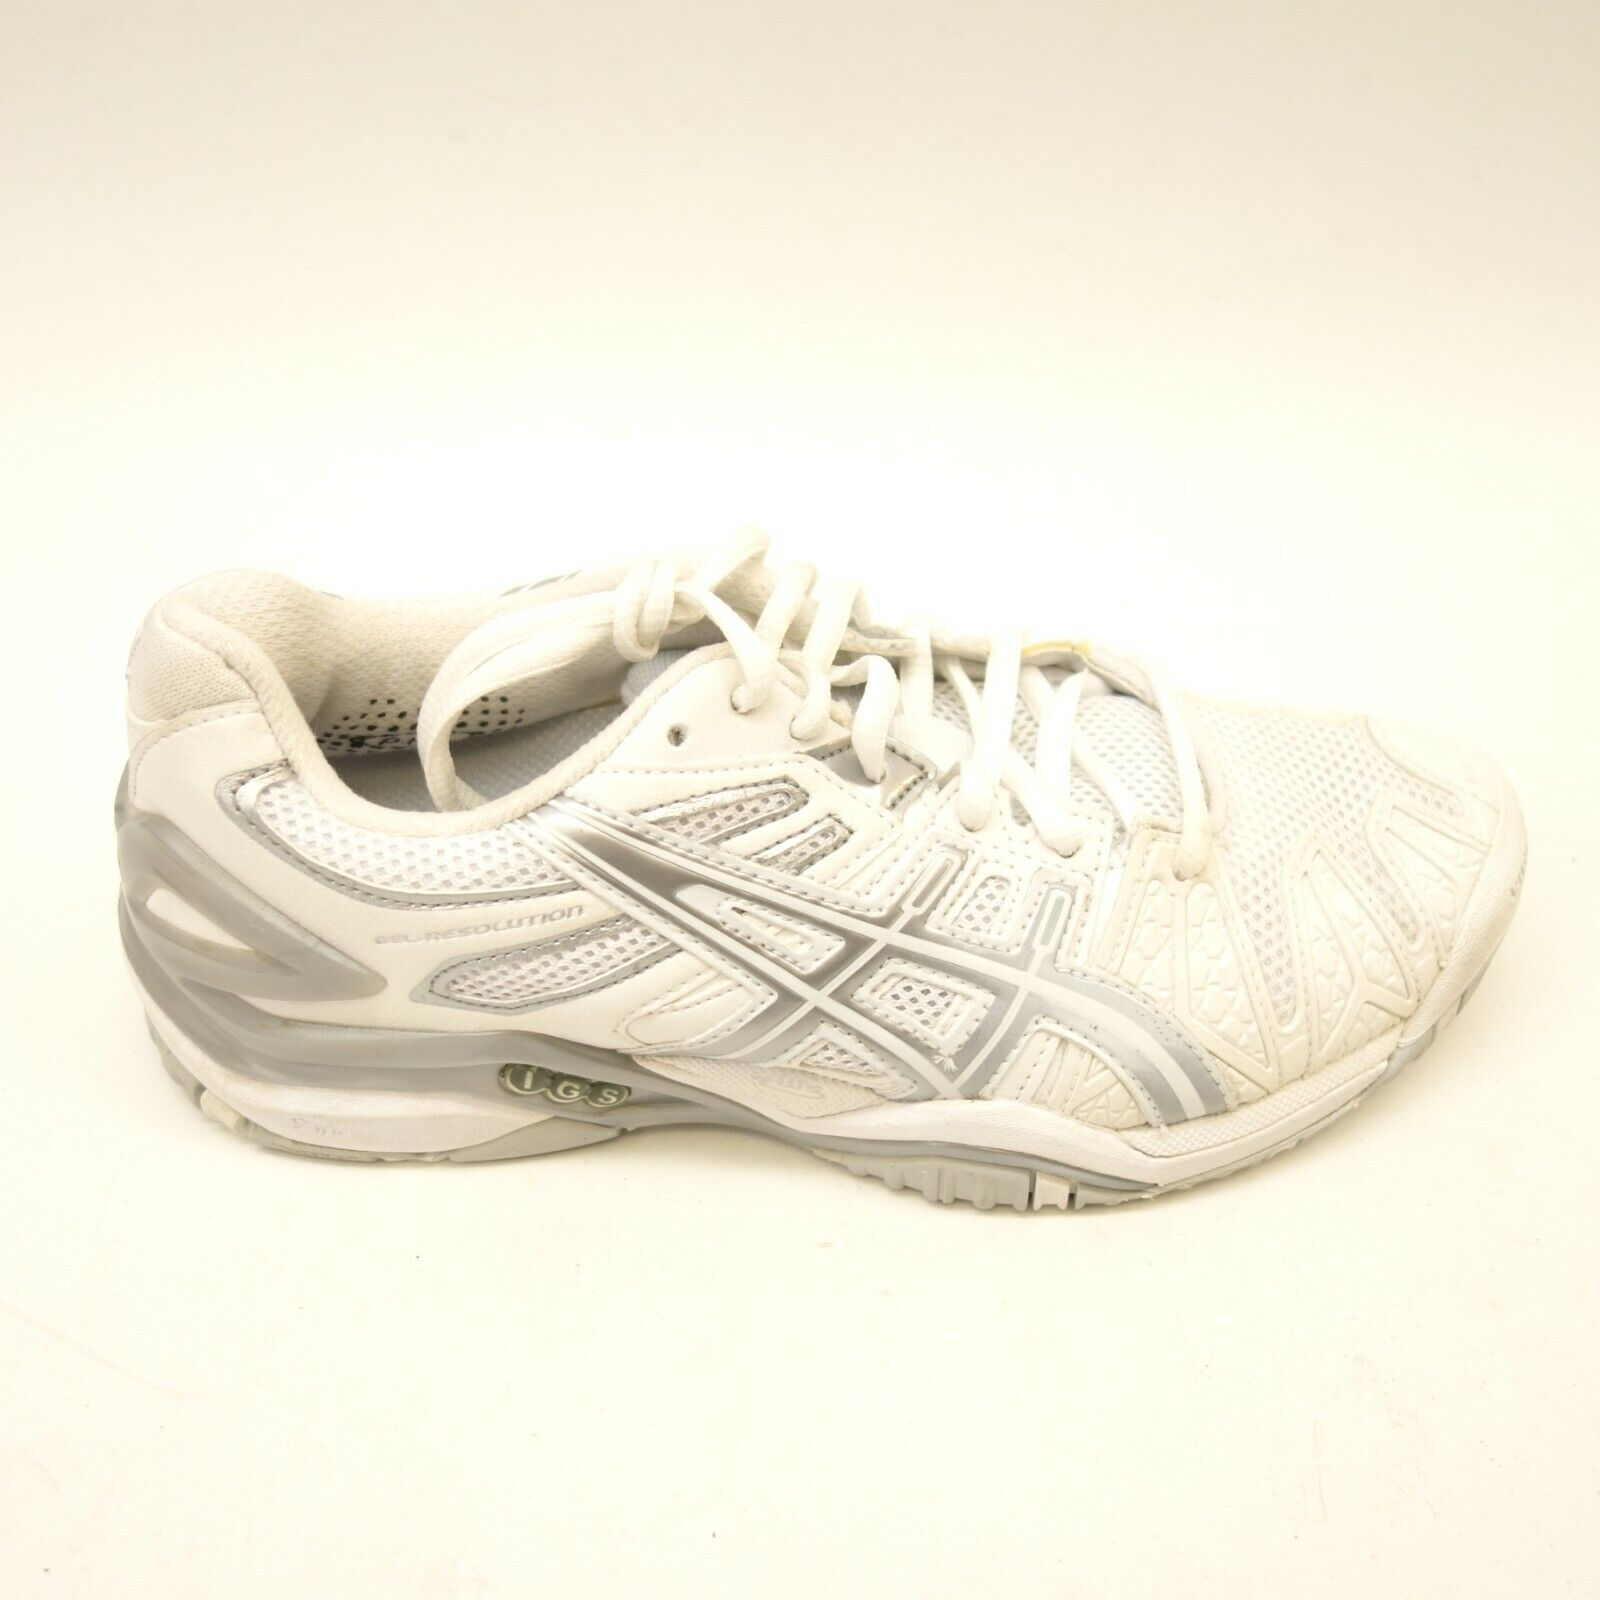 Asics Womens Gel-Game 7 White Athletic Running Cross Training shoes Sz 6